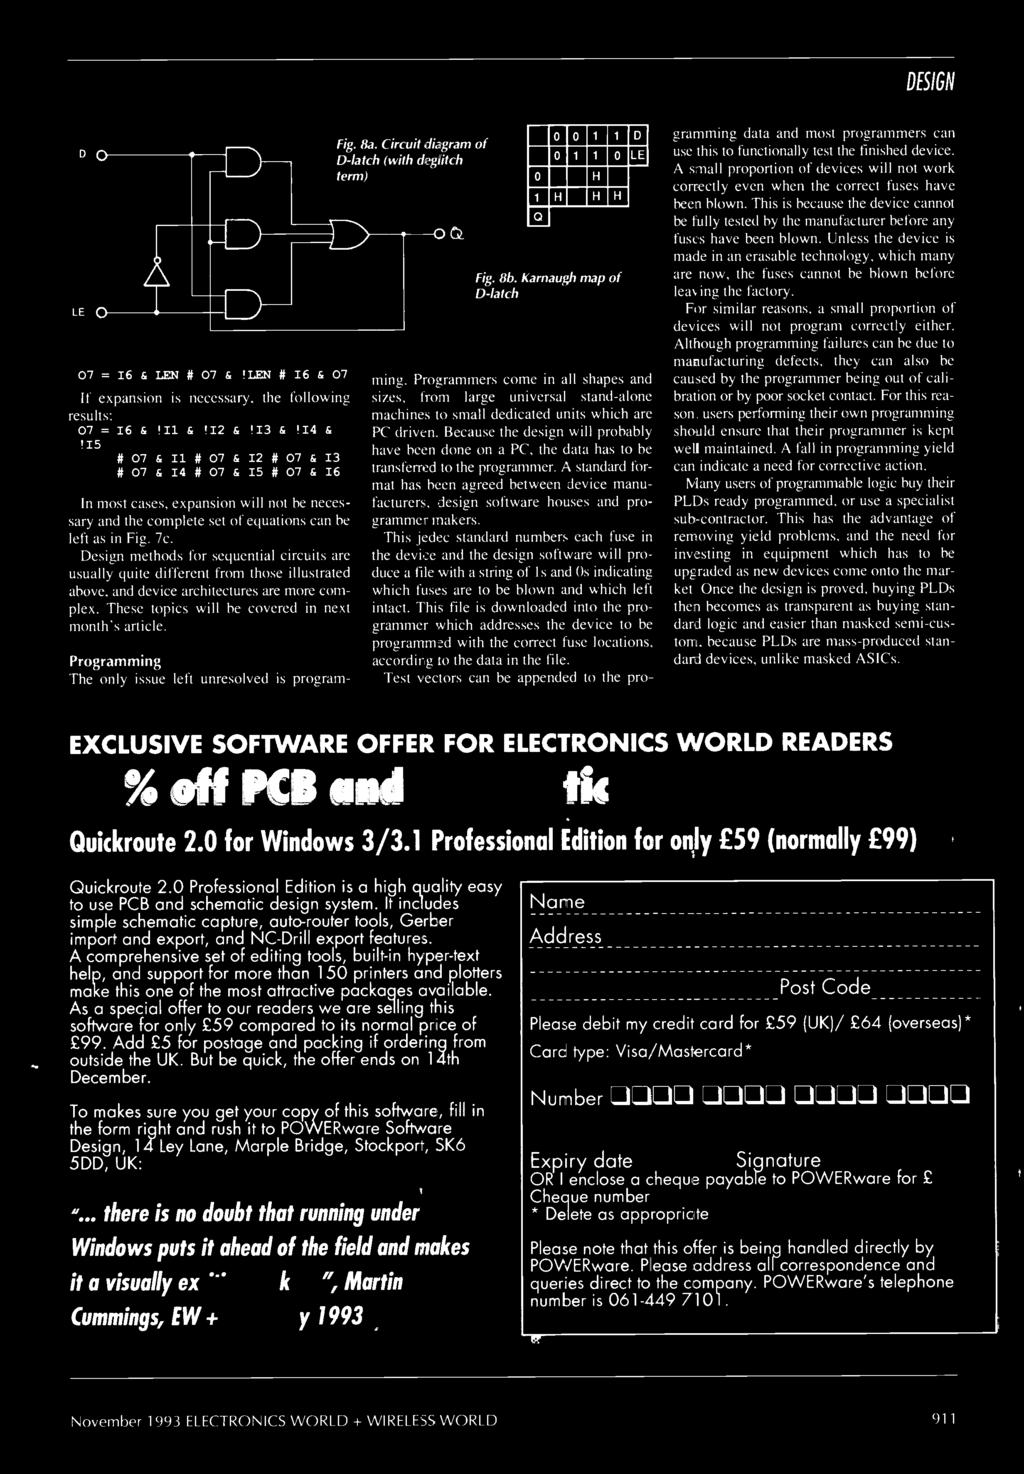 World Wireless Pdf 1989 Mercedes 190 E 2300 Fuse Box Diagram Design Methods For Sequential Circuits Are Usually Quite Different From Those Illustrated Above And Device